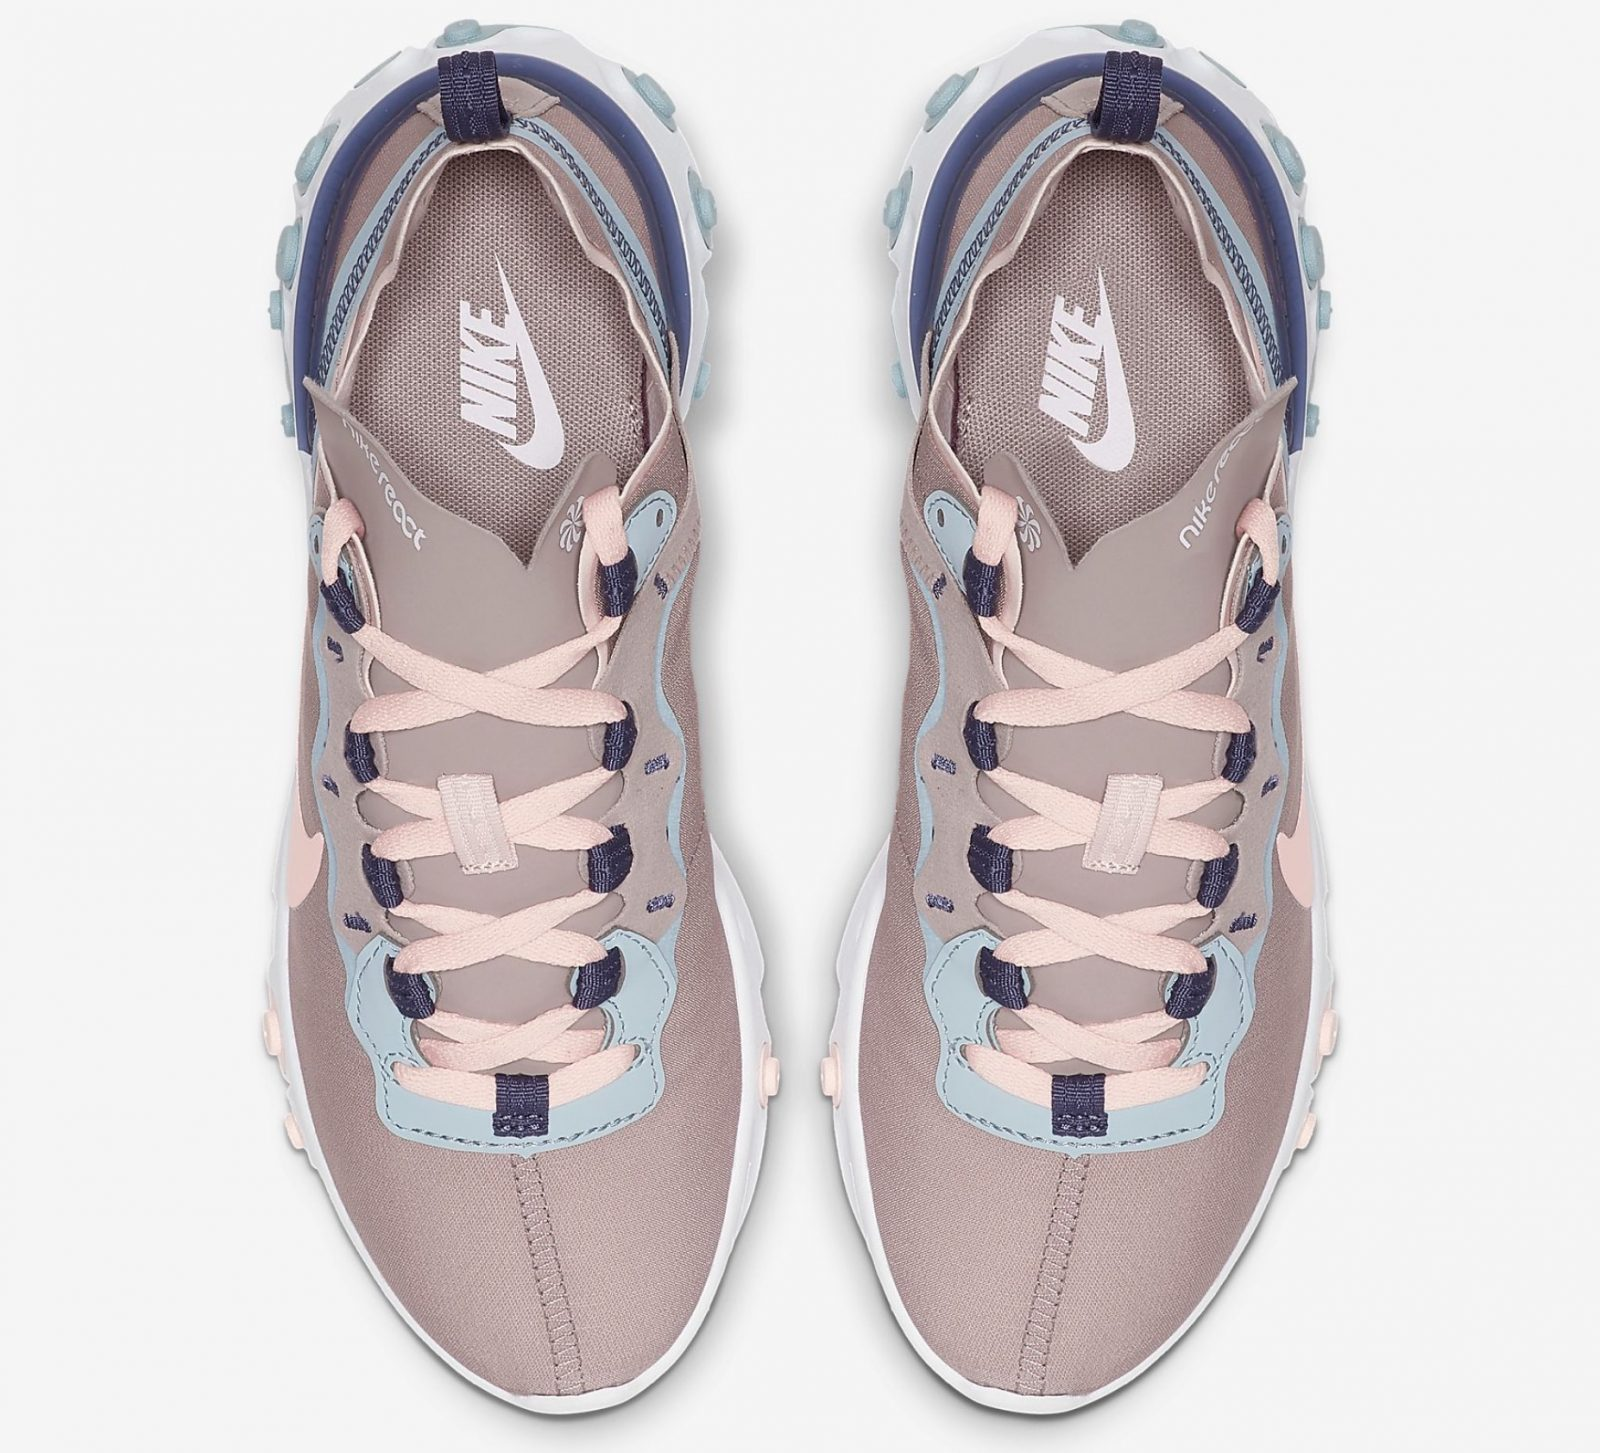 Nike React Element 55 Pumice/Sanded Purple/Ocean Cube/Echo Pink | CK0834-200 above